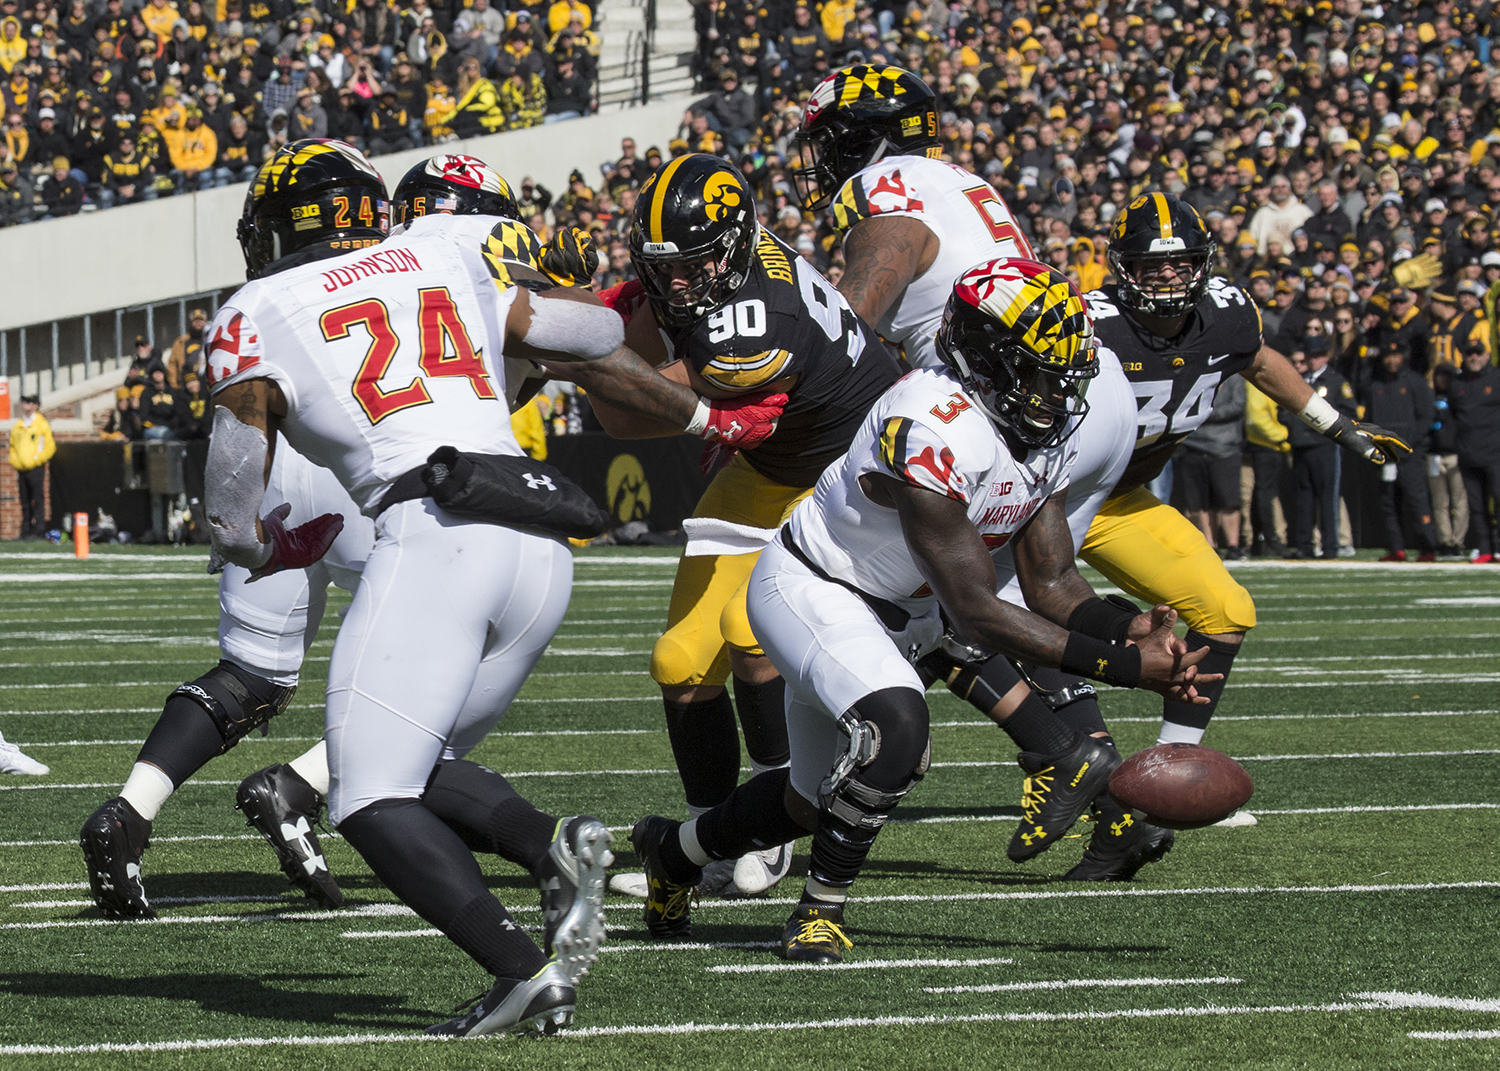 Terrapin Tyrrell Pigrome fumbles the ball during the Iowa vs. Maryland game at Kinnick stadium on Saturday Oct. 20, 2018. The Hawkeyes defeated the Terrapins 23-0.